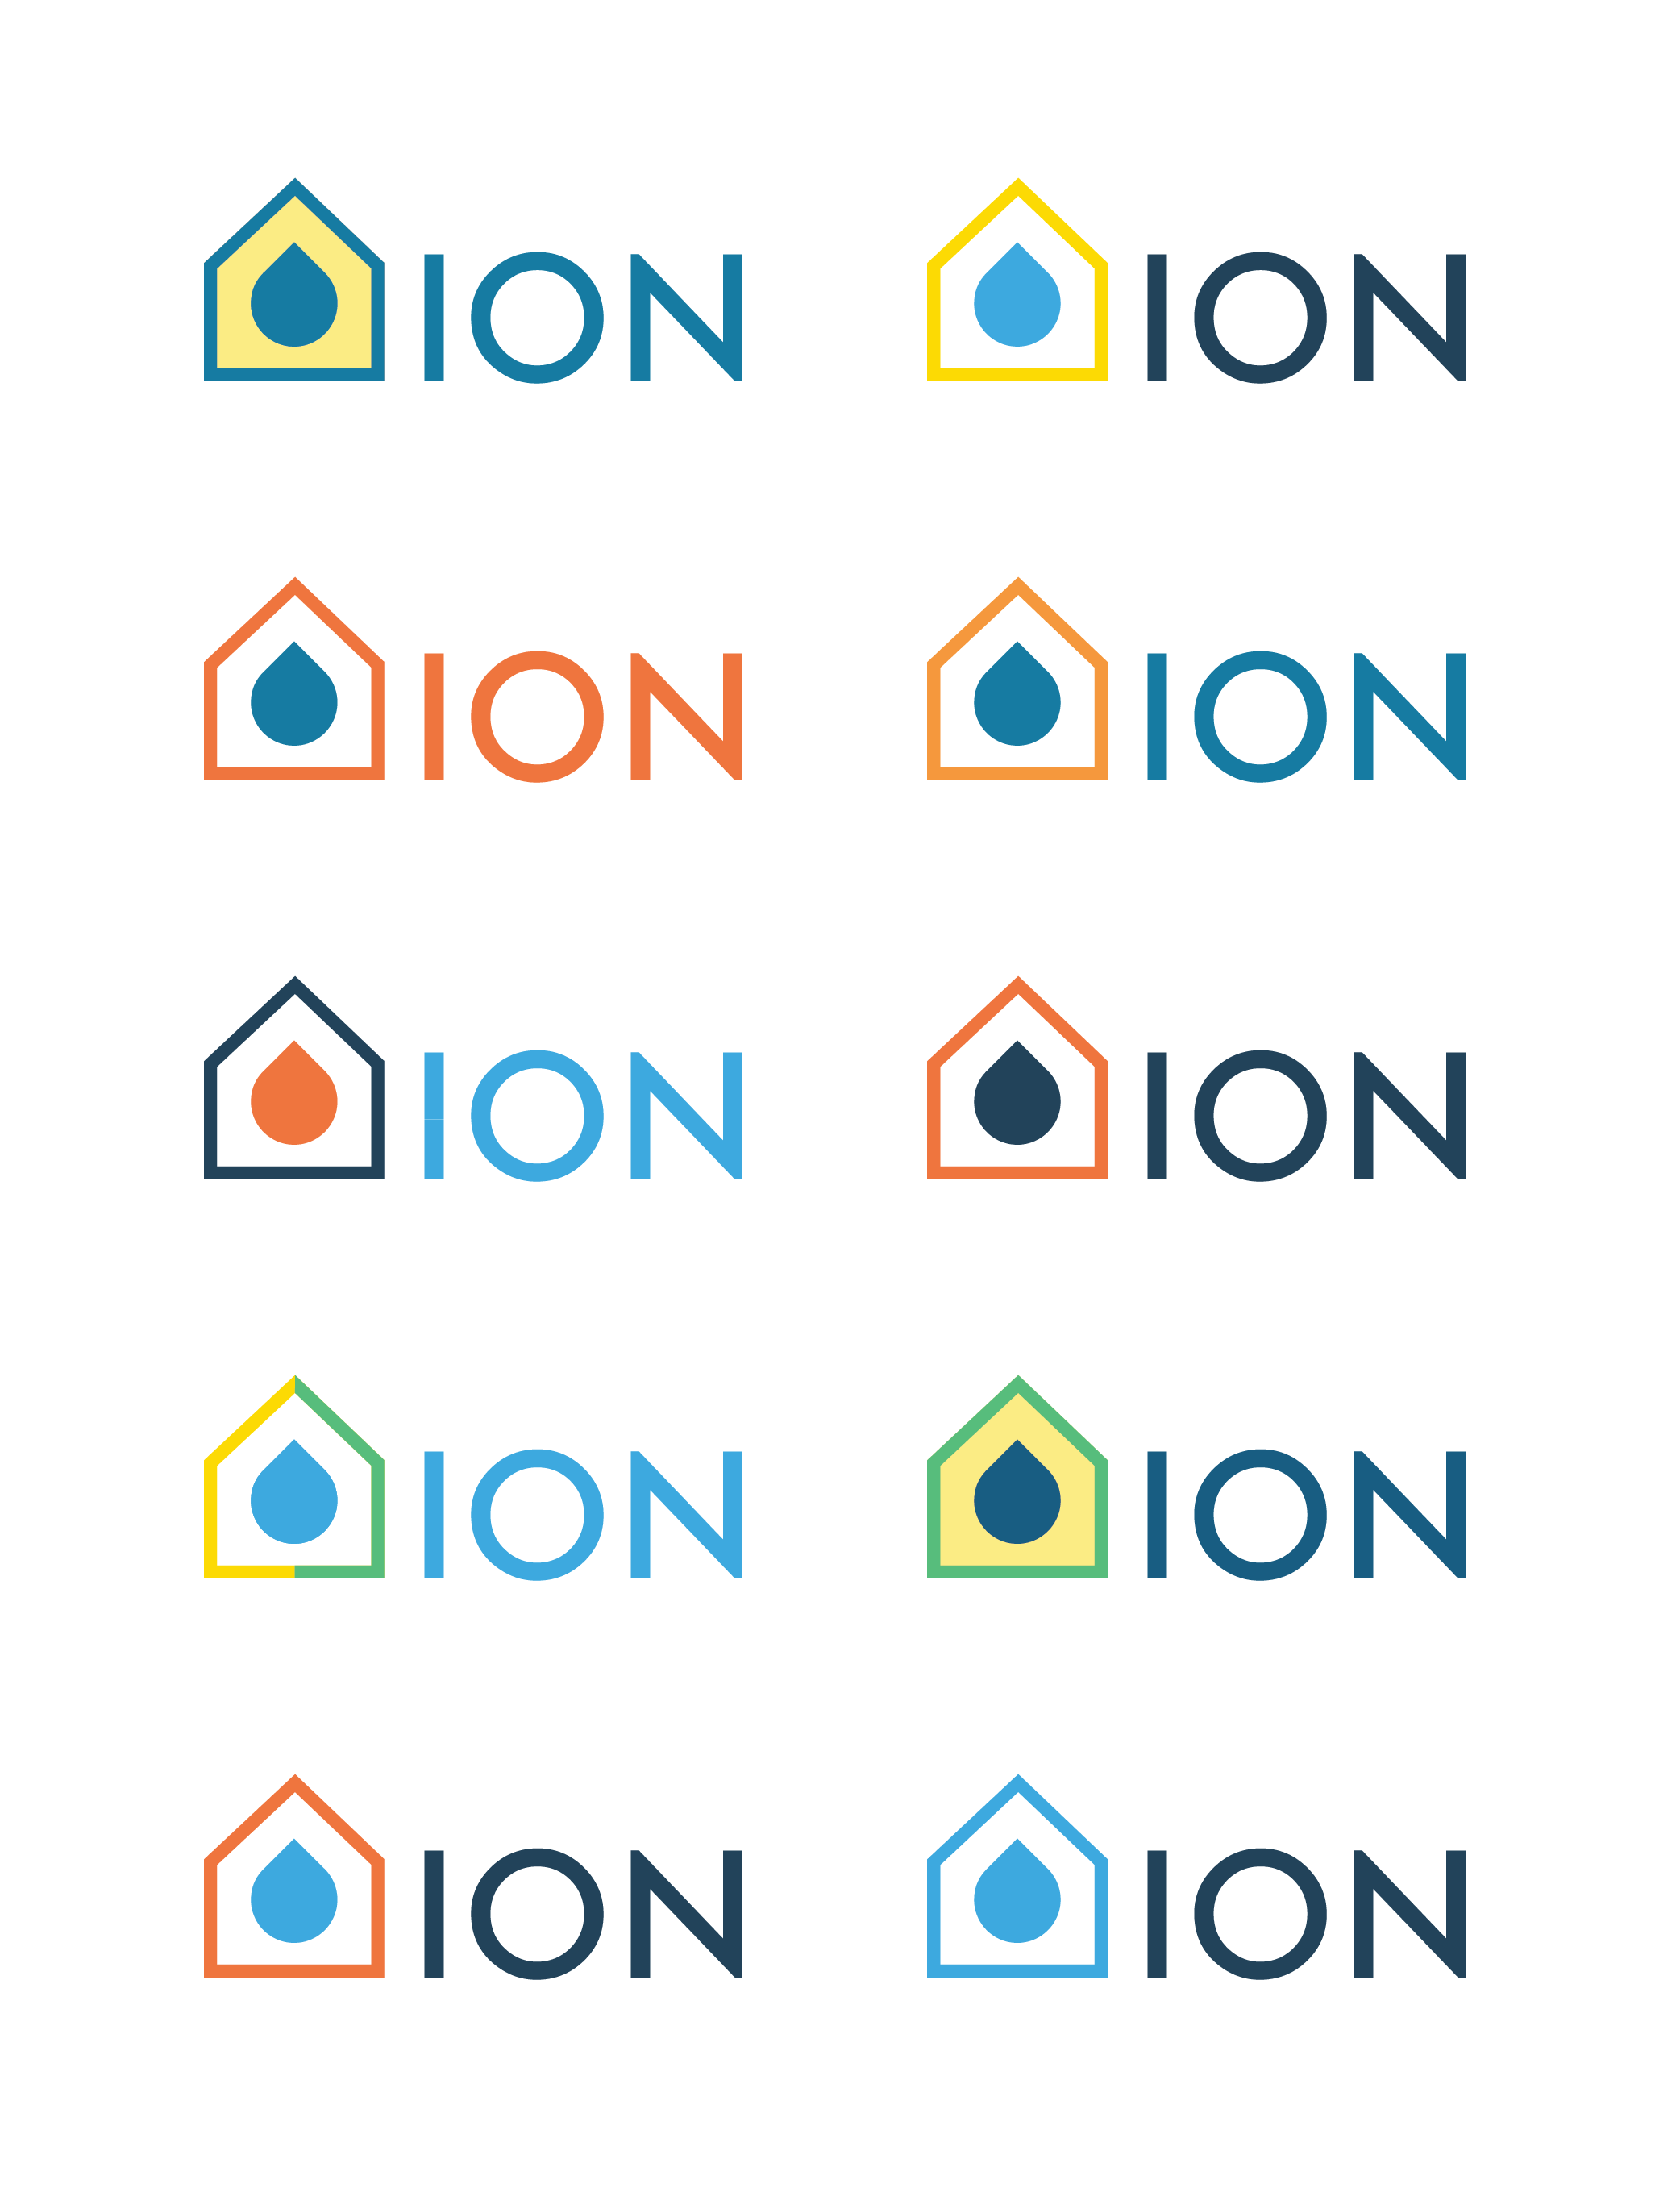 ionLogoExamples-04